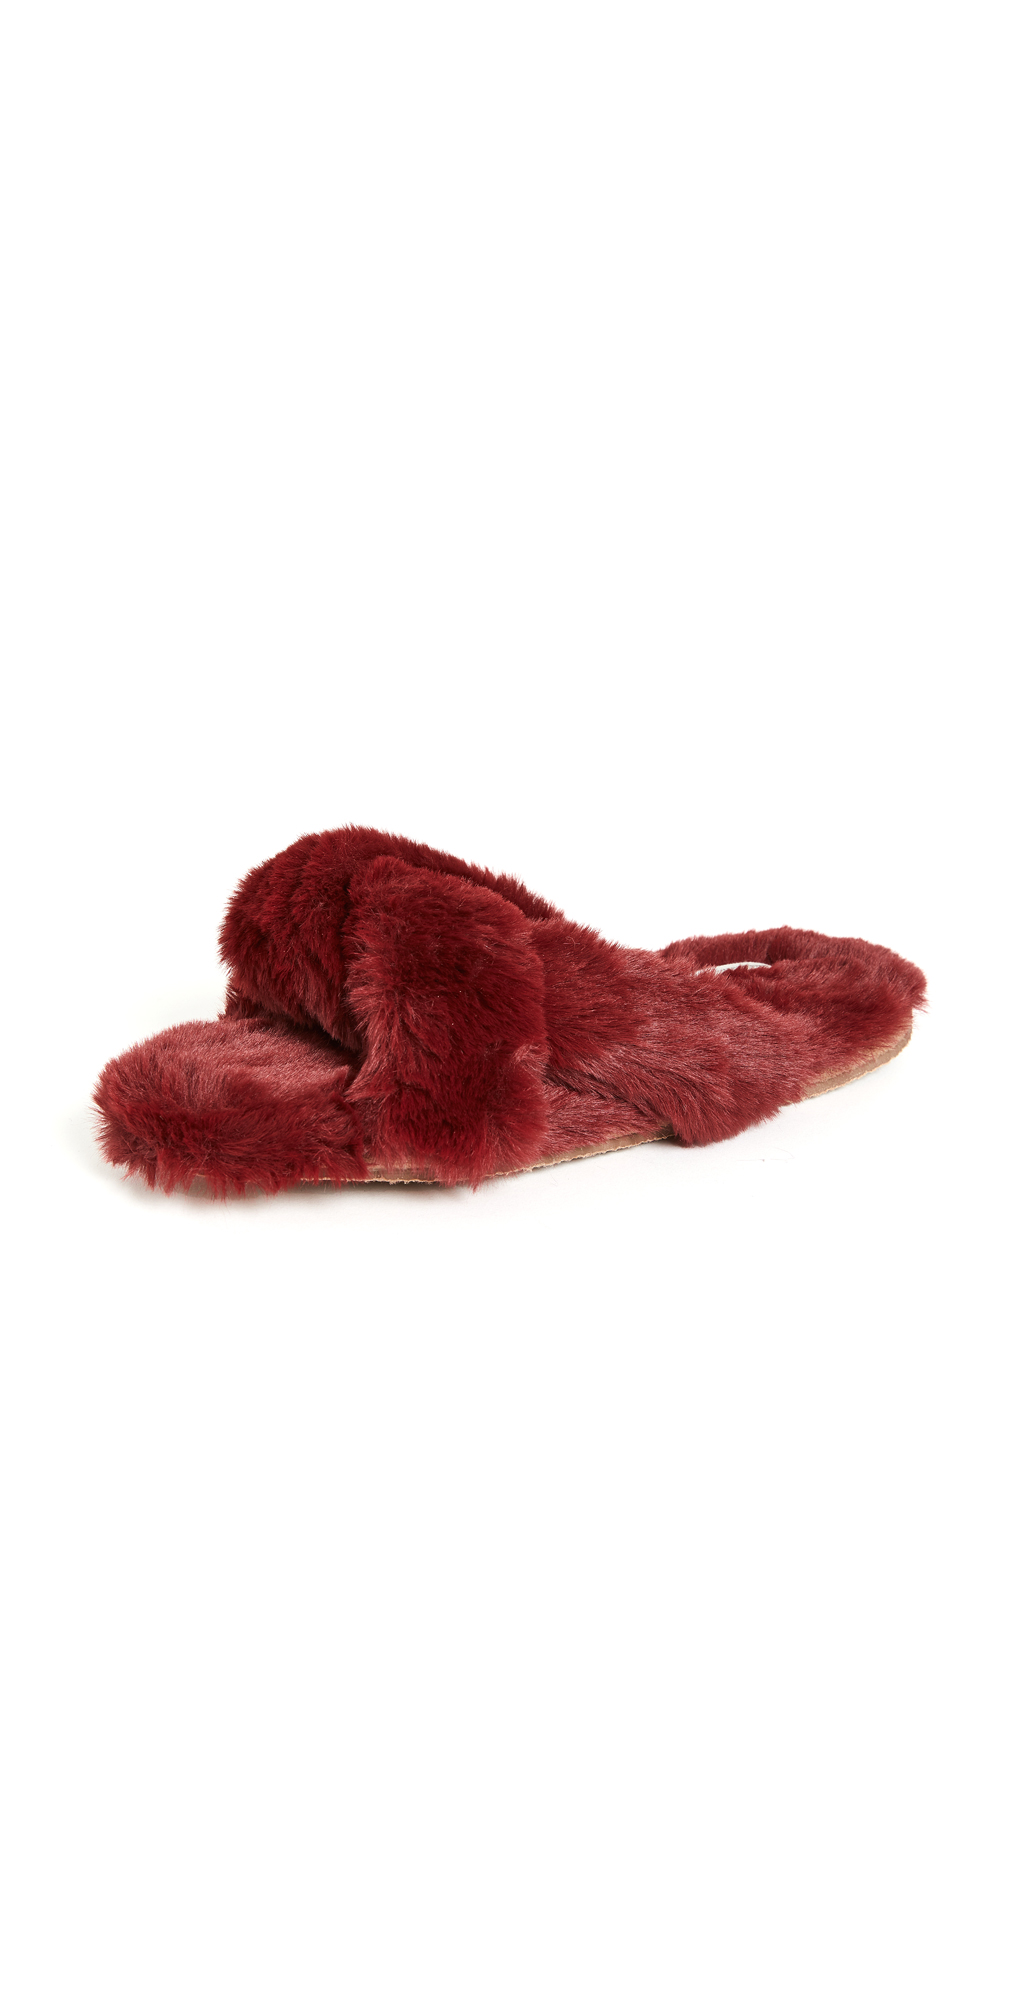 Madewell Crisscross Furry Slippers